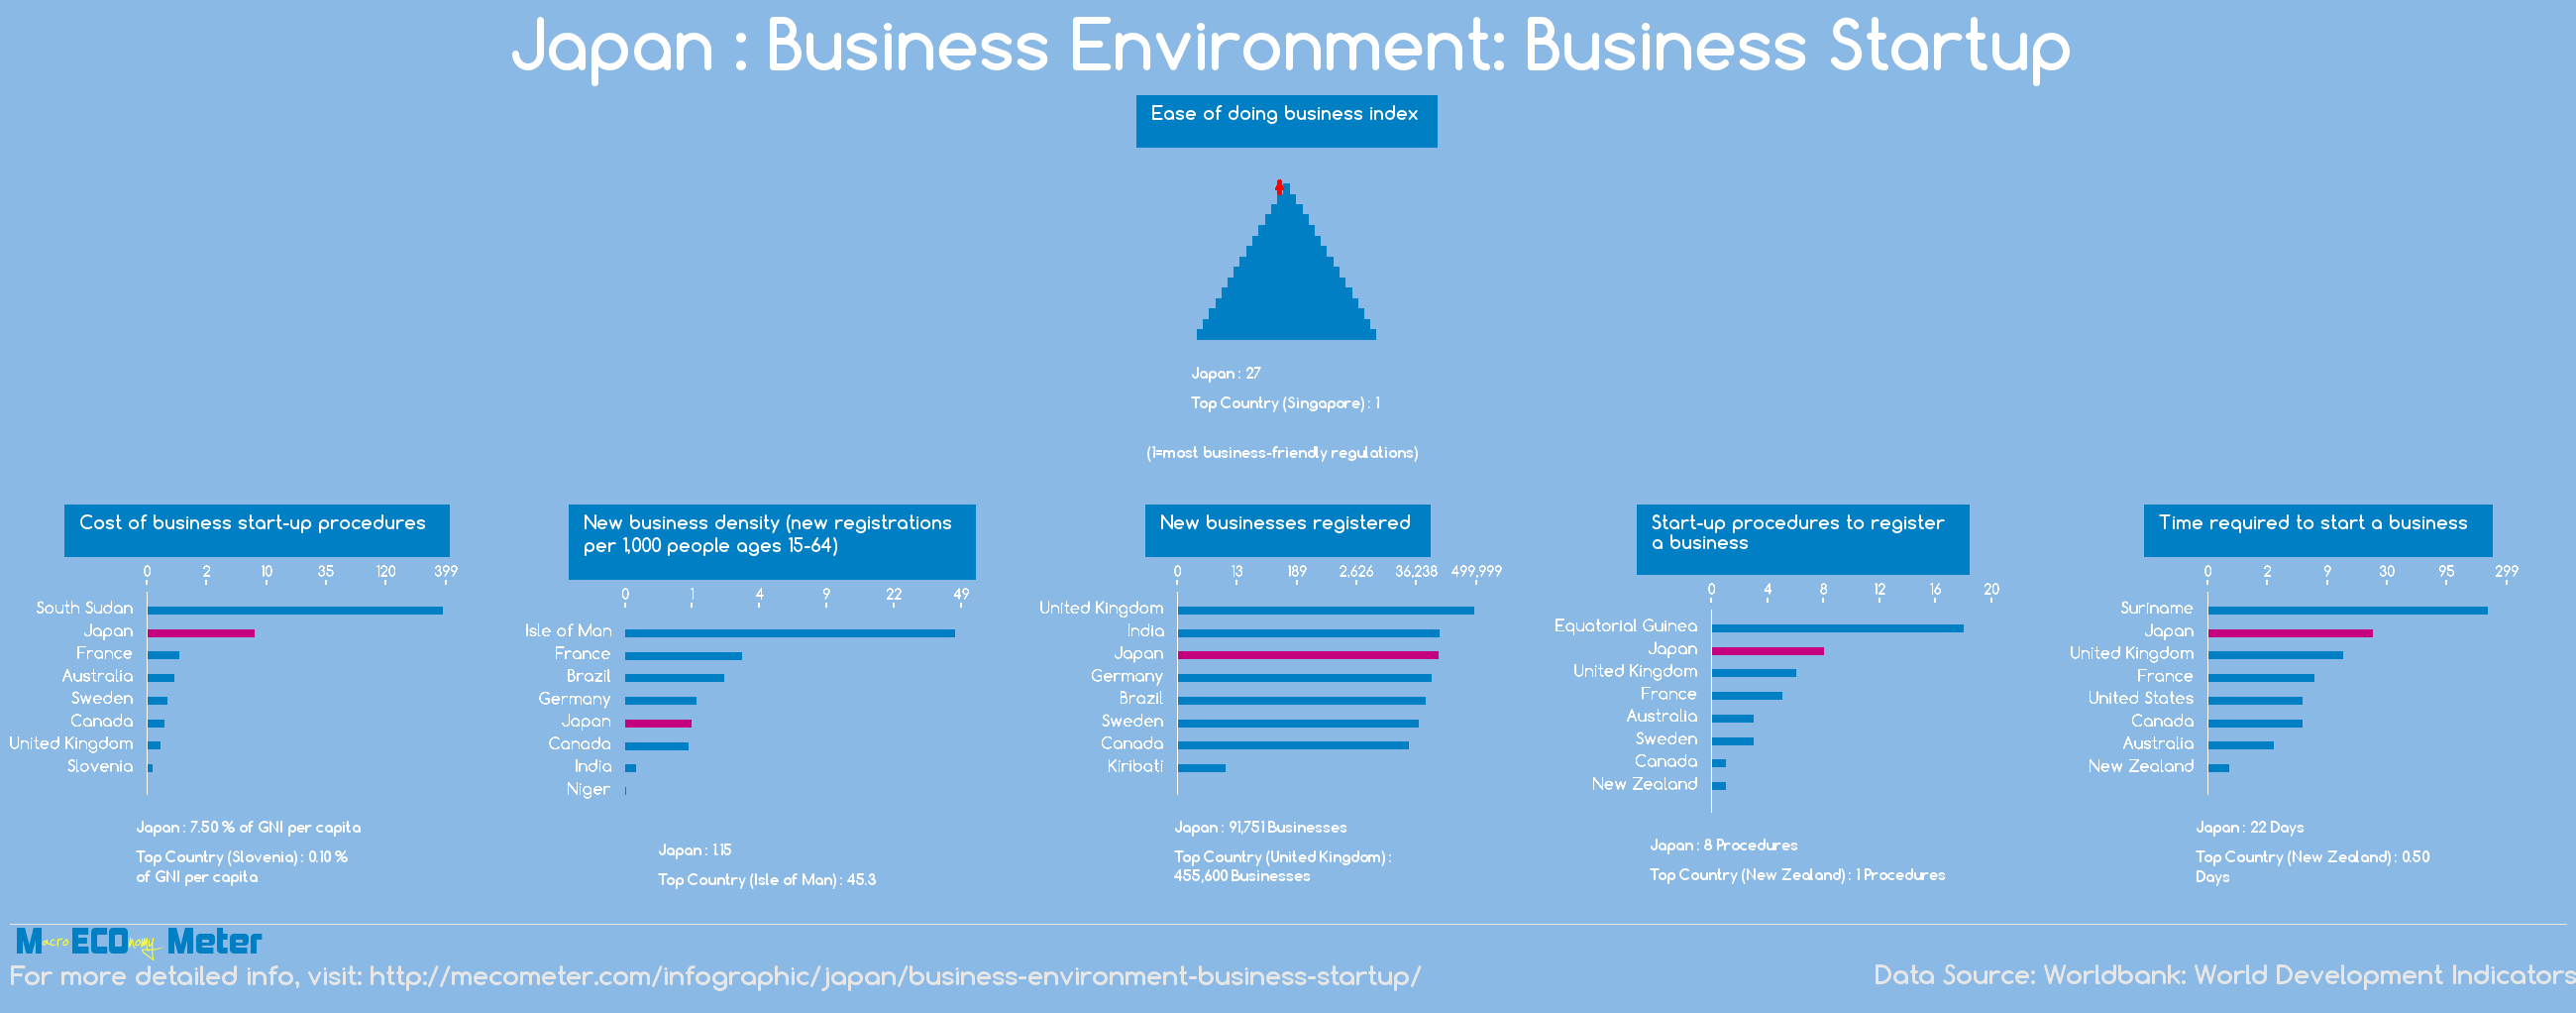 Japan : Business Environment: Business Startup